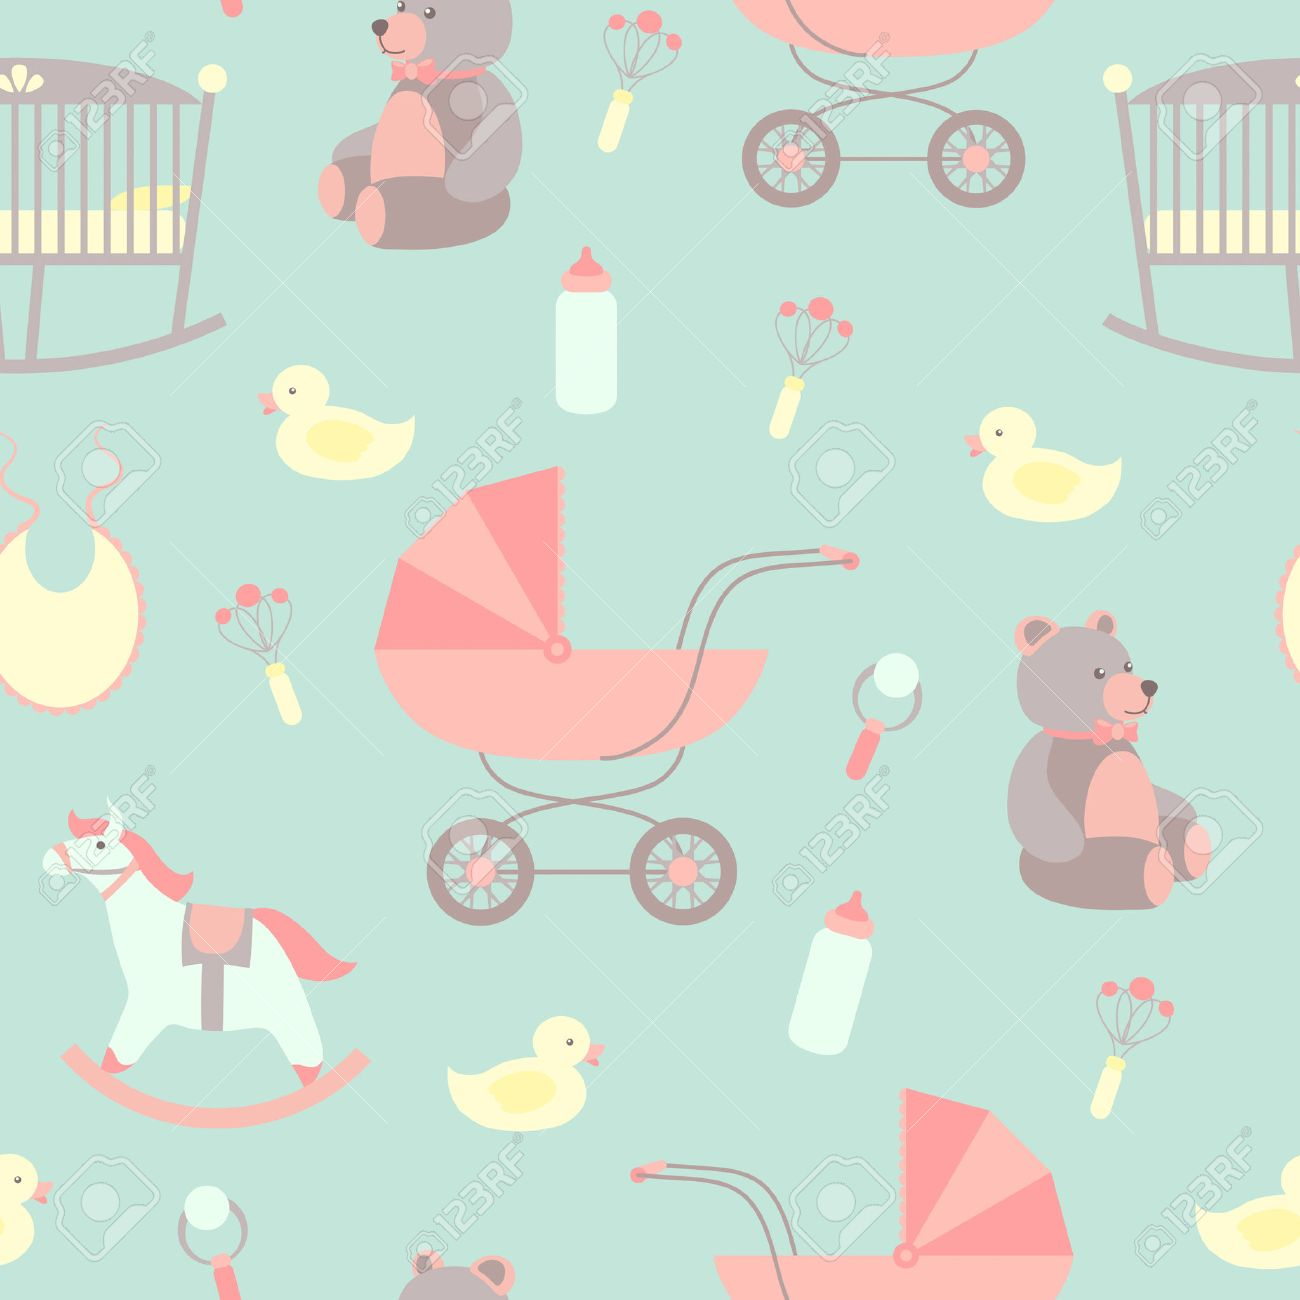 1300x1300 - Baby Background Pictures 25